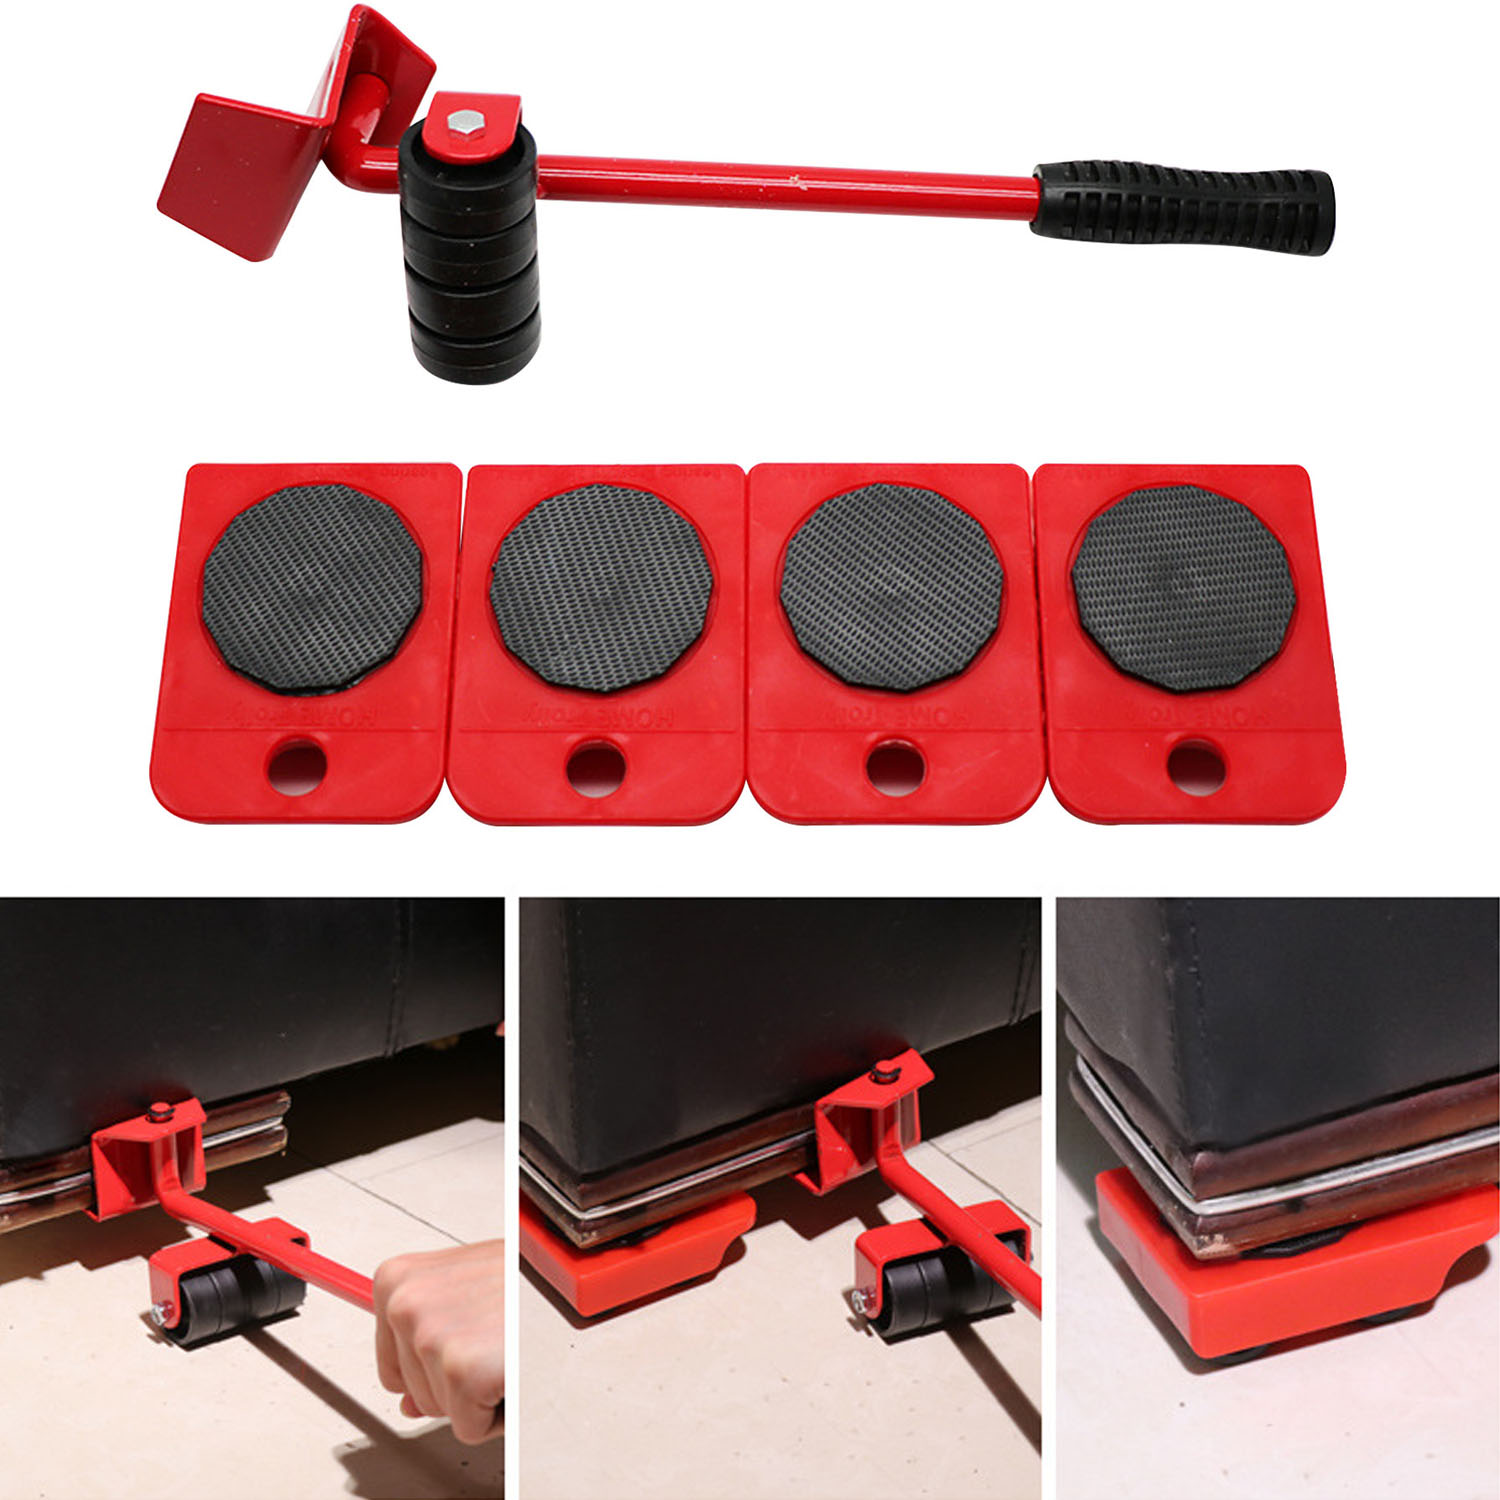 5 In 1 Moving Heavy Object Handling Tools Portable Furniture Lifter Transport Household Hand Set 4 Mover Roller + 1 Wheel Bar